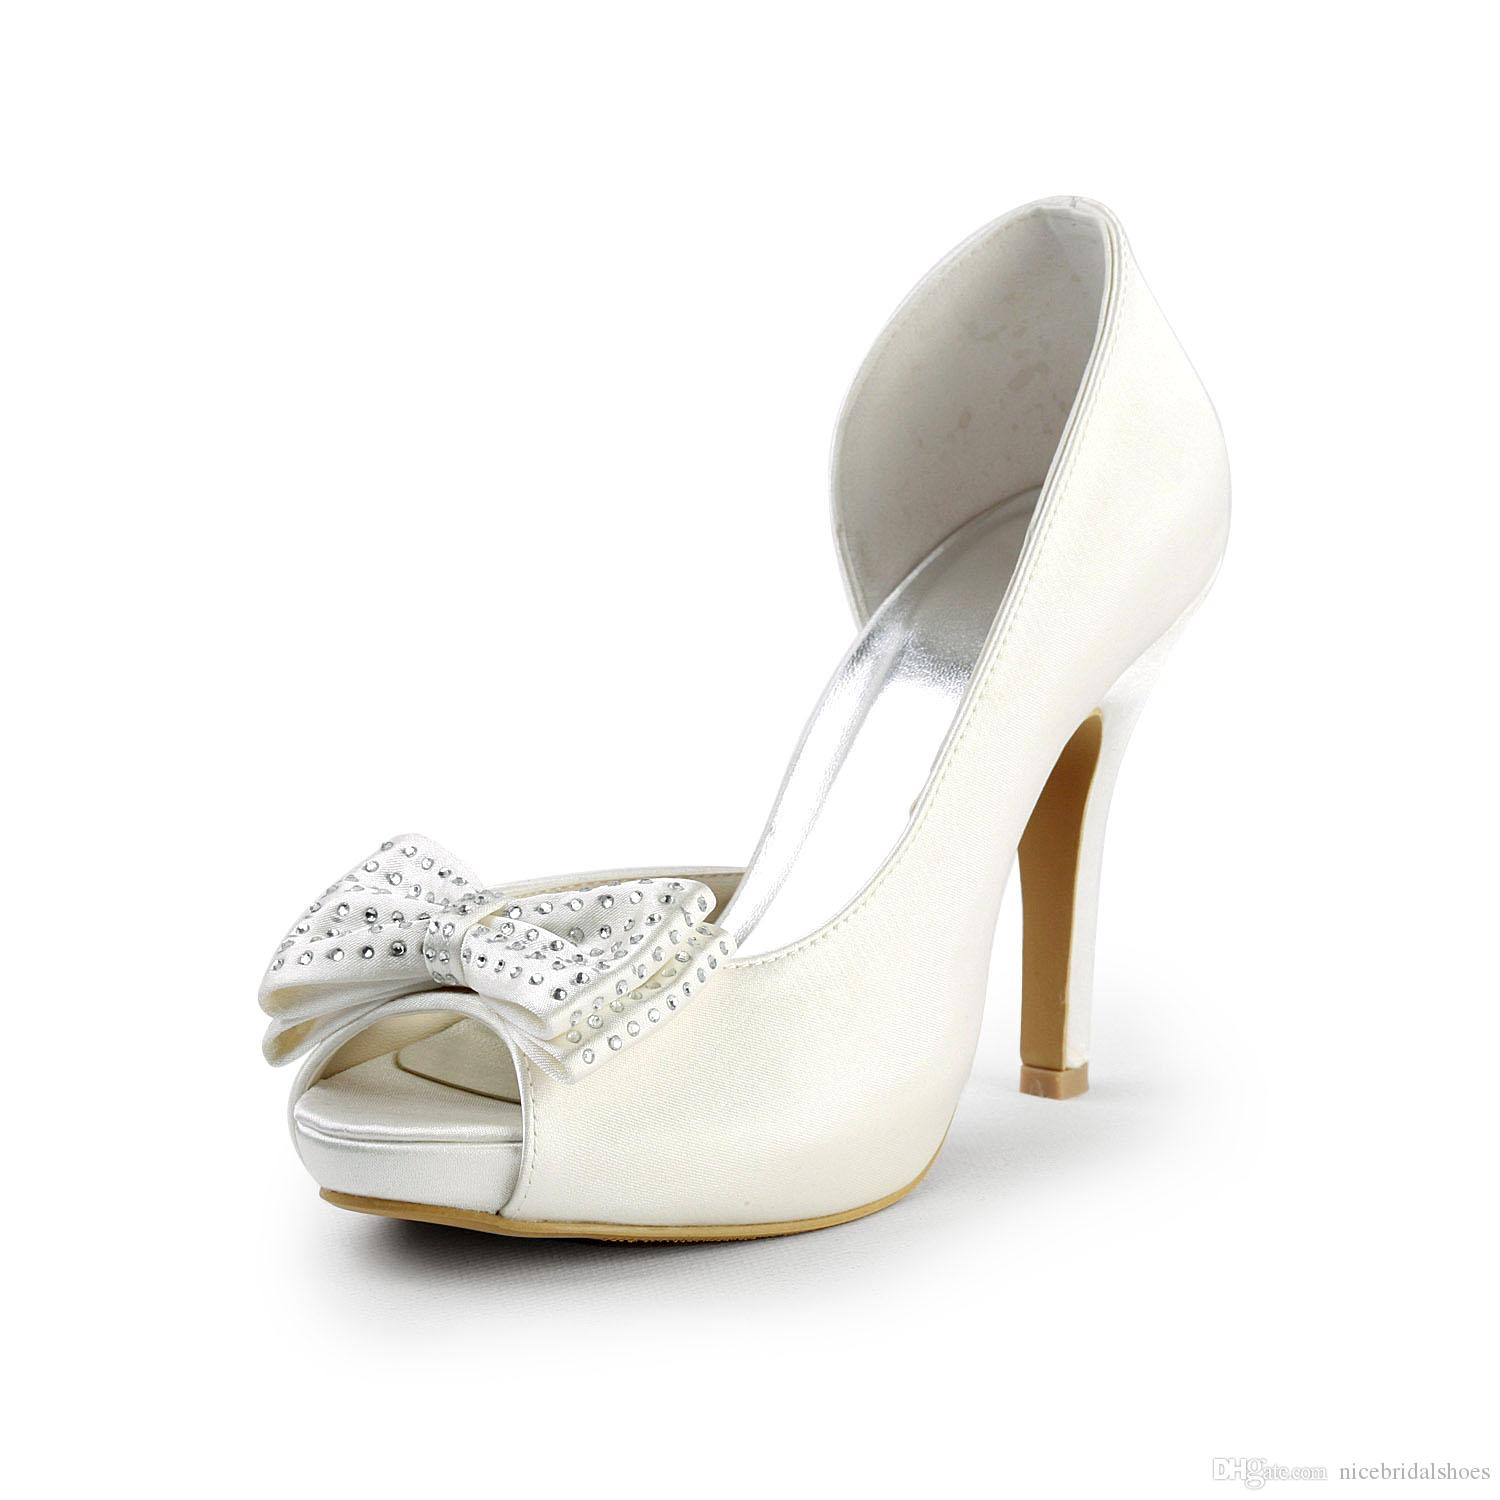 Rhinestones Nice Satin Delicate Style Wedding Shoes Custom Made 10 Cm High  Heel Bridal Shoes Party Prom Women Shoes With Bow Buying Shoes Online  Dressy ... 48208507f650